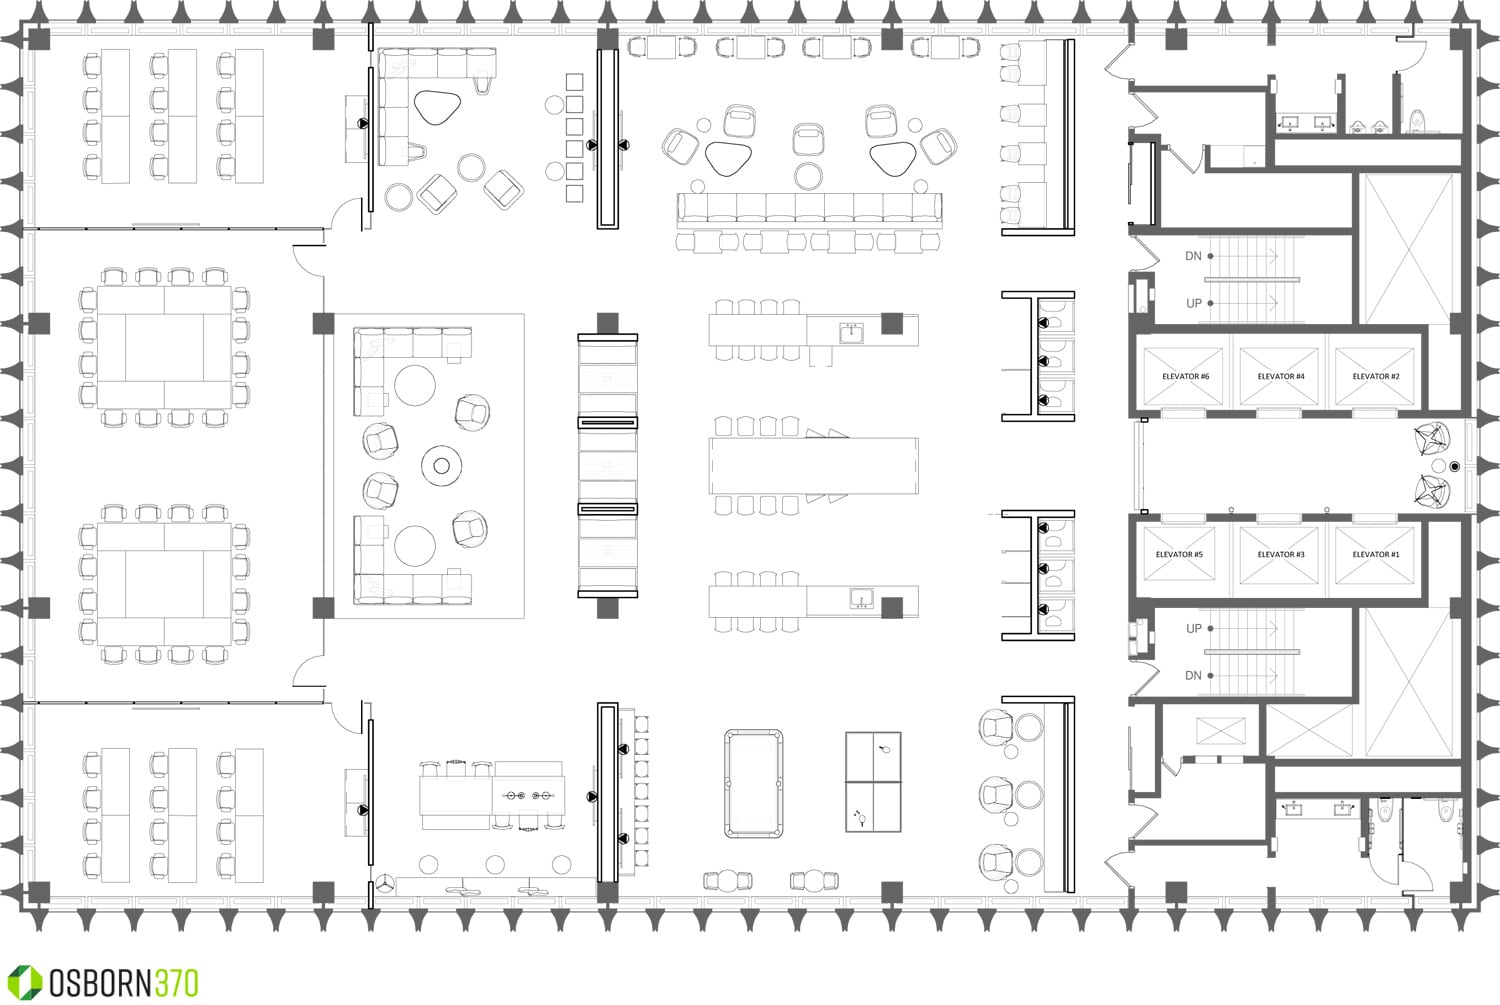 amenity level floorplan